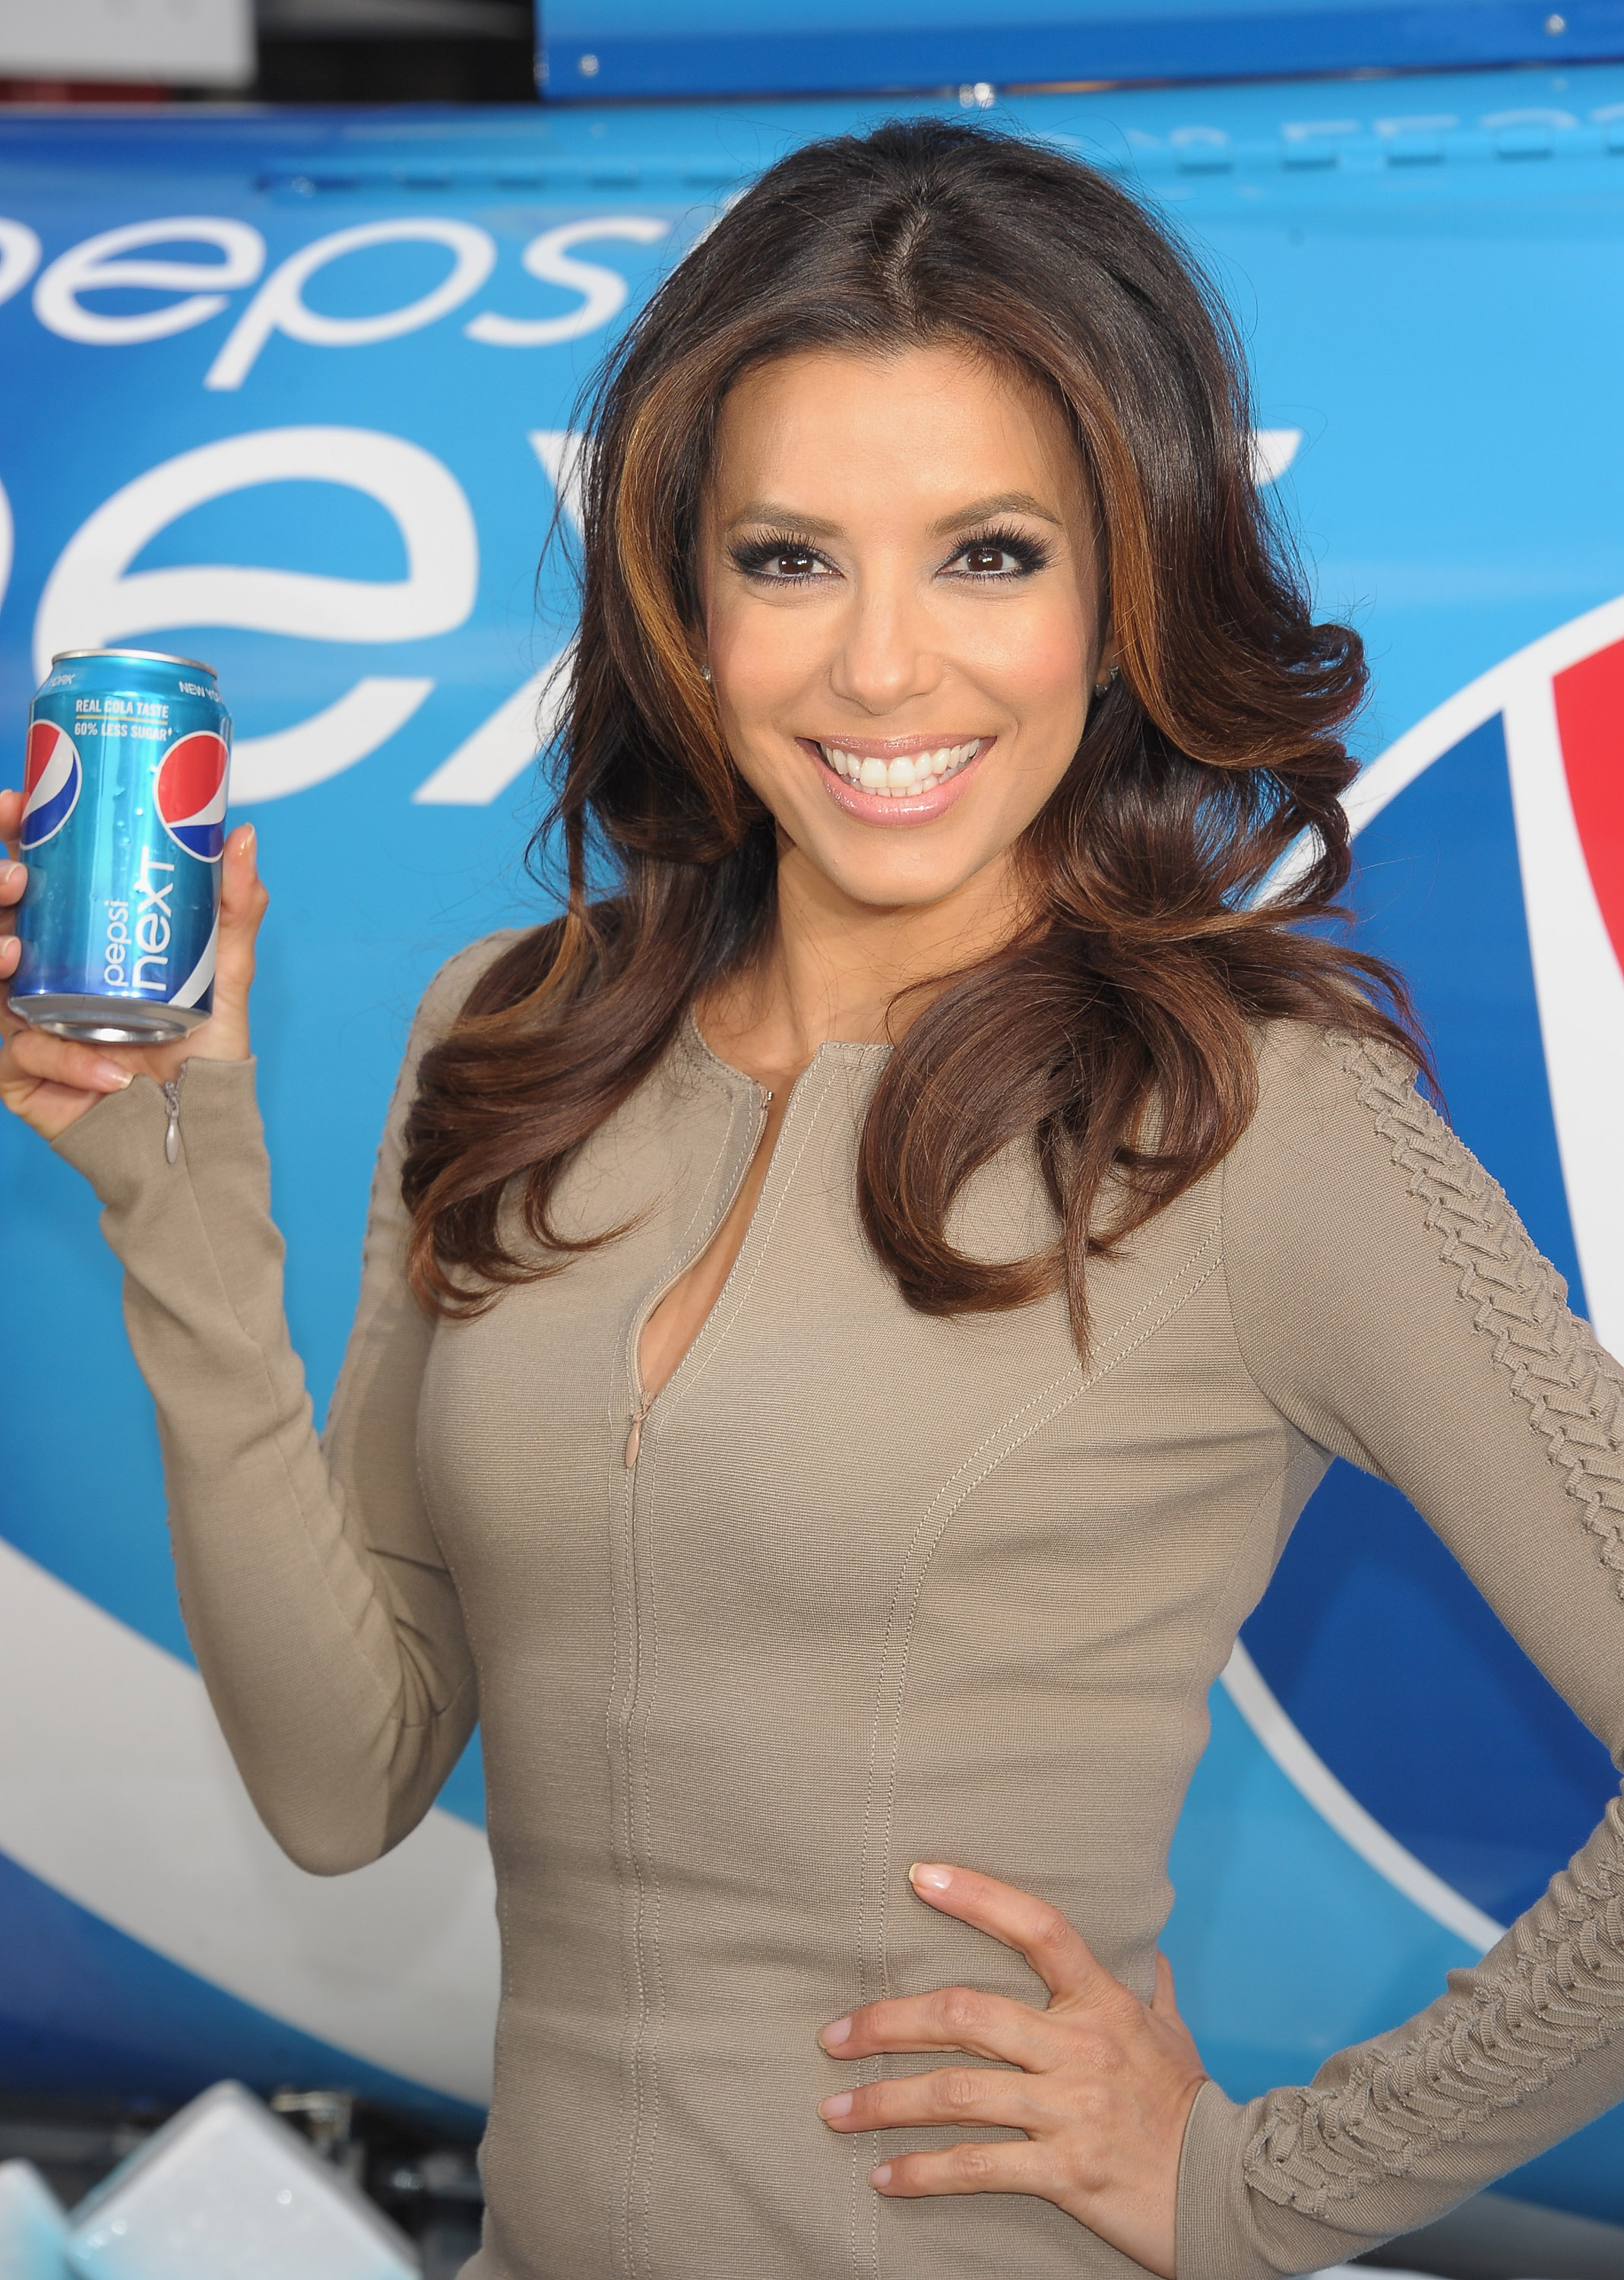 Eva Longoria posed for a photo with a can of Pepsi Next in NYC.